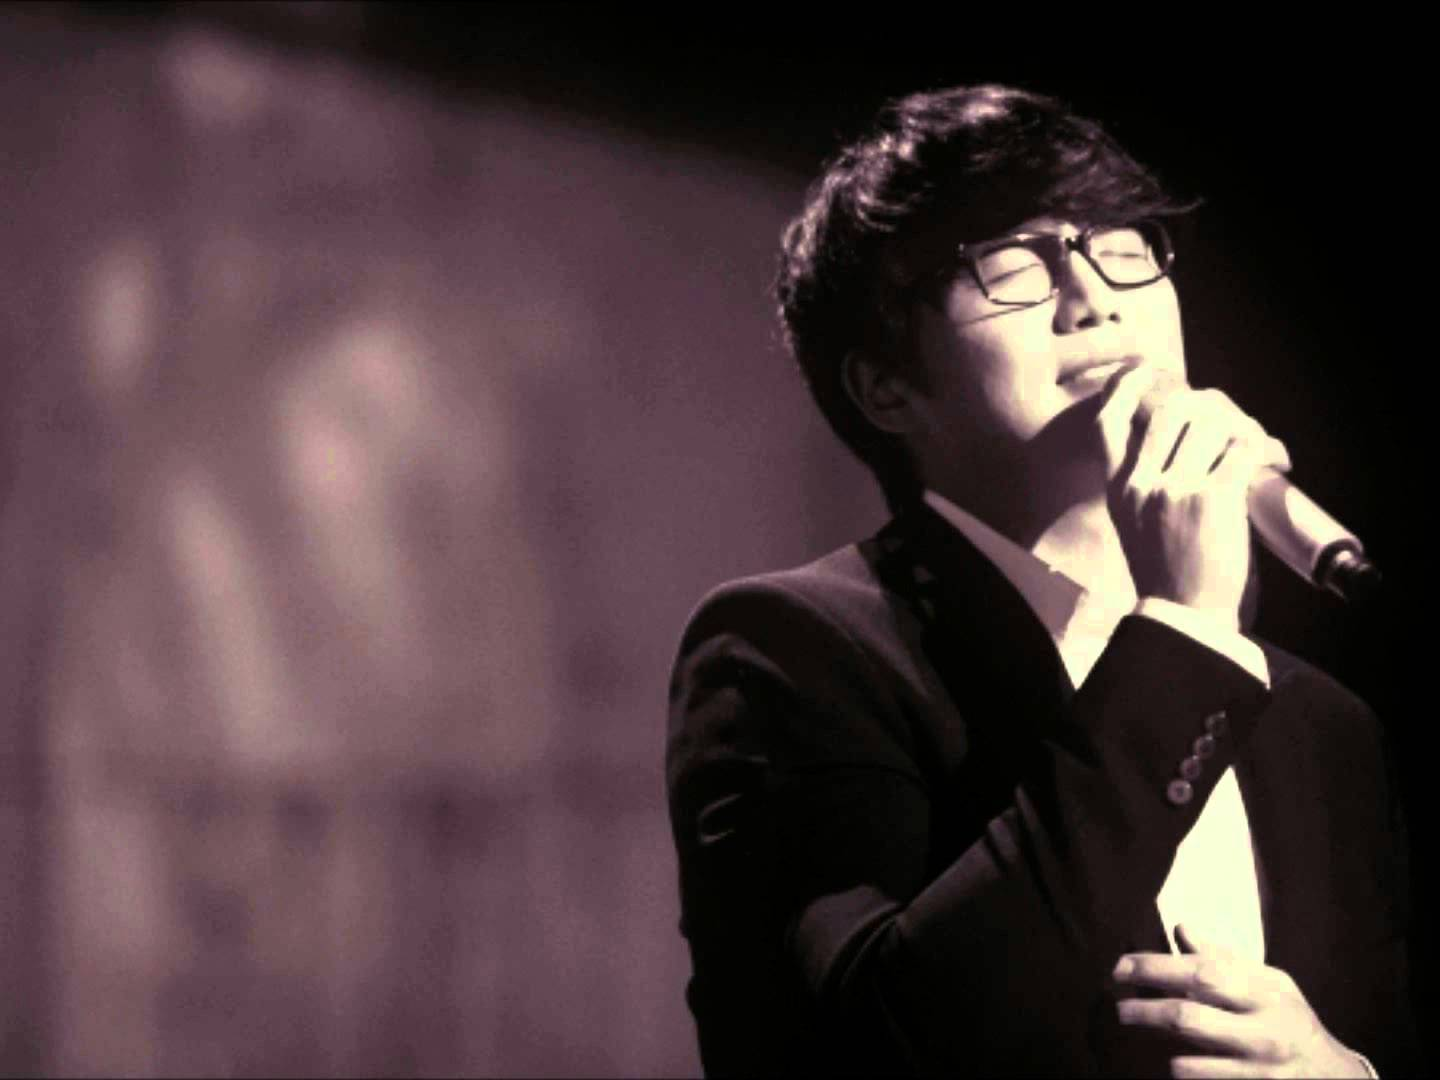 Sung Si Kyung Someday Somewhere Ost The Legend Of The Blue Sea 2